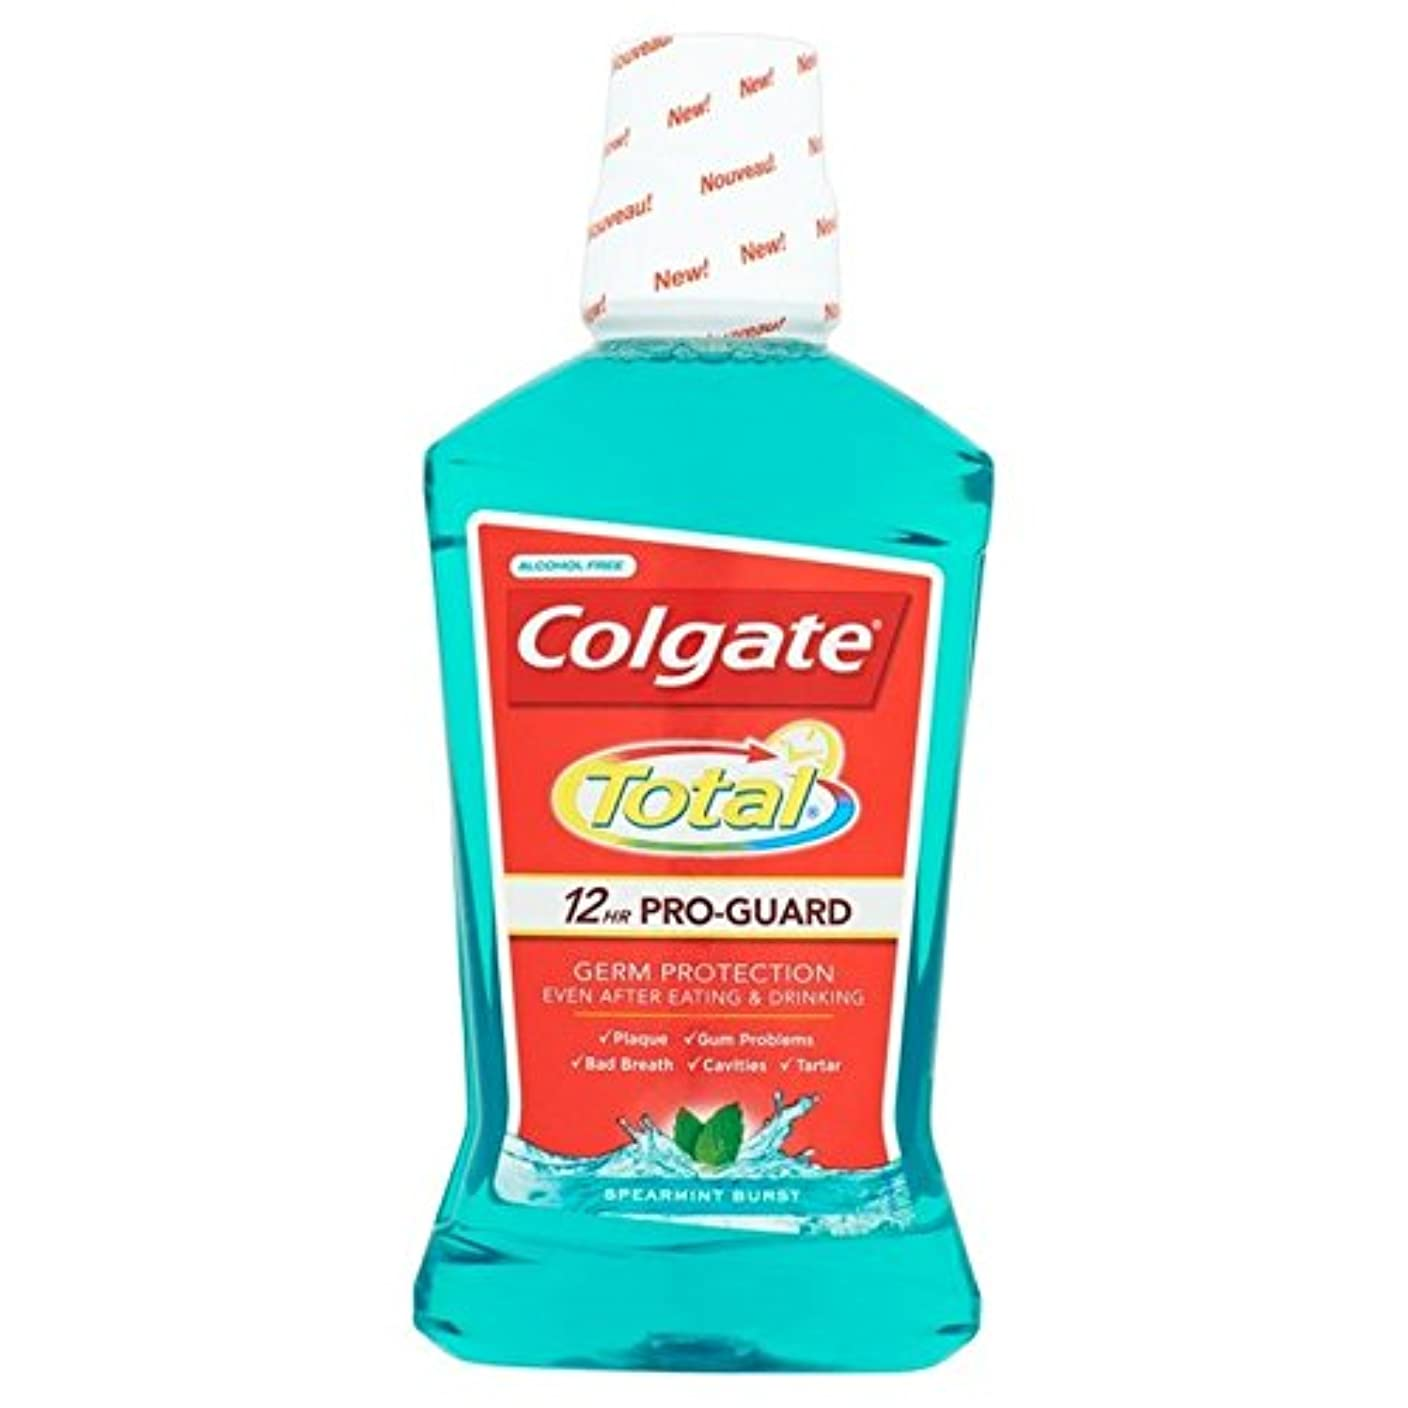 Colgate Total Advanced Green Mouthwash 500ml 500ml (Pack of 6) - コルゲートトータル先進的な緑色のマウスウォッシュ500ミリリットル500ミリリットル x6...